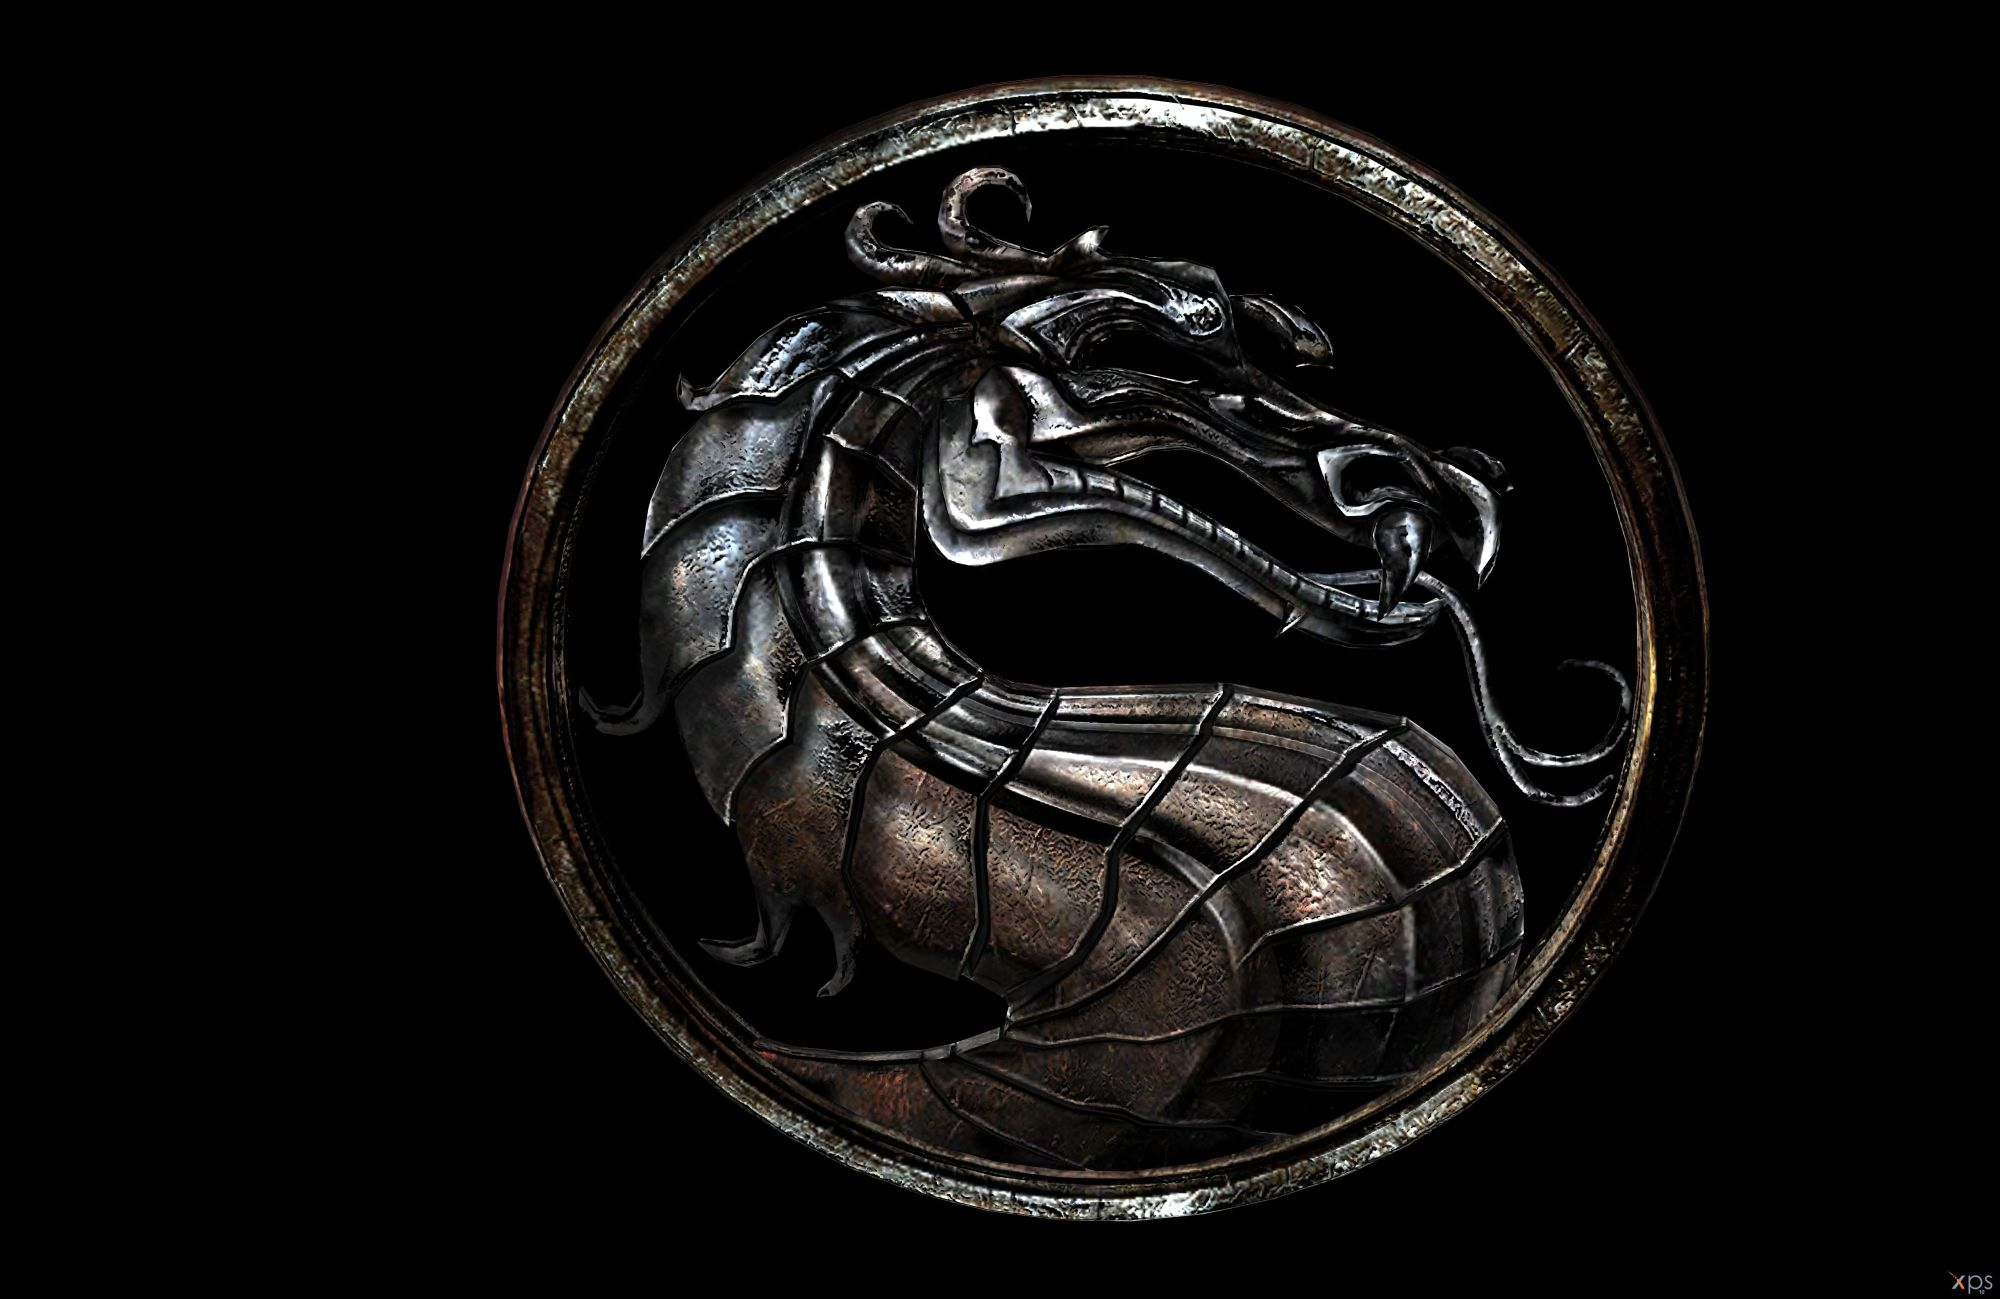 10 things you didnt know about the mortal kombat